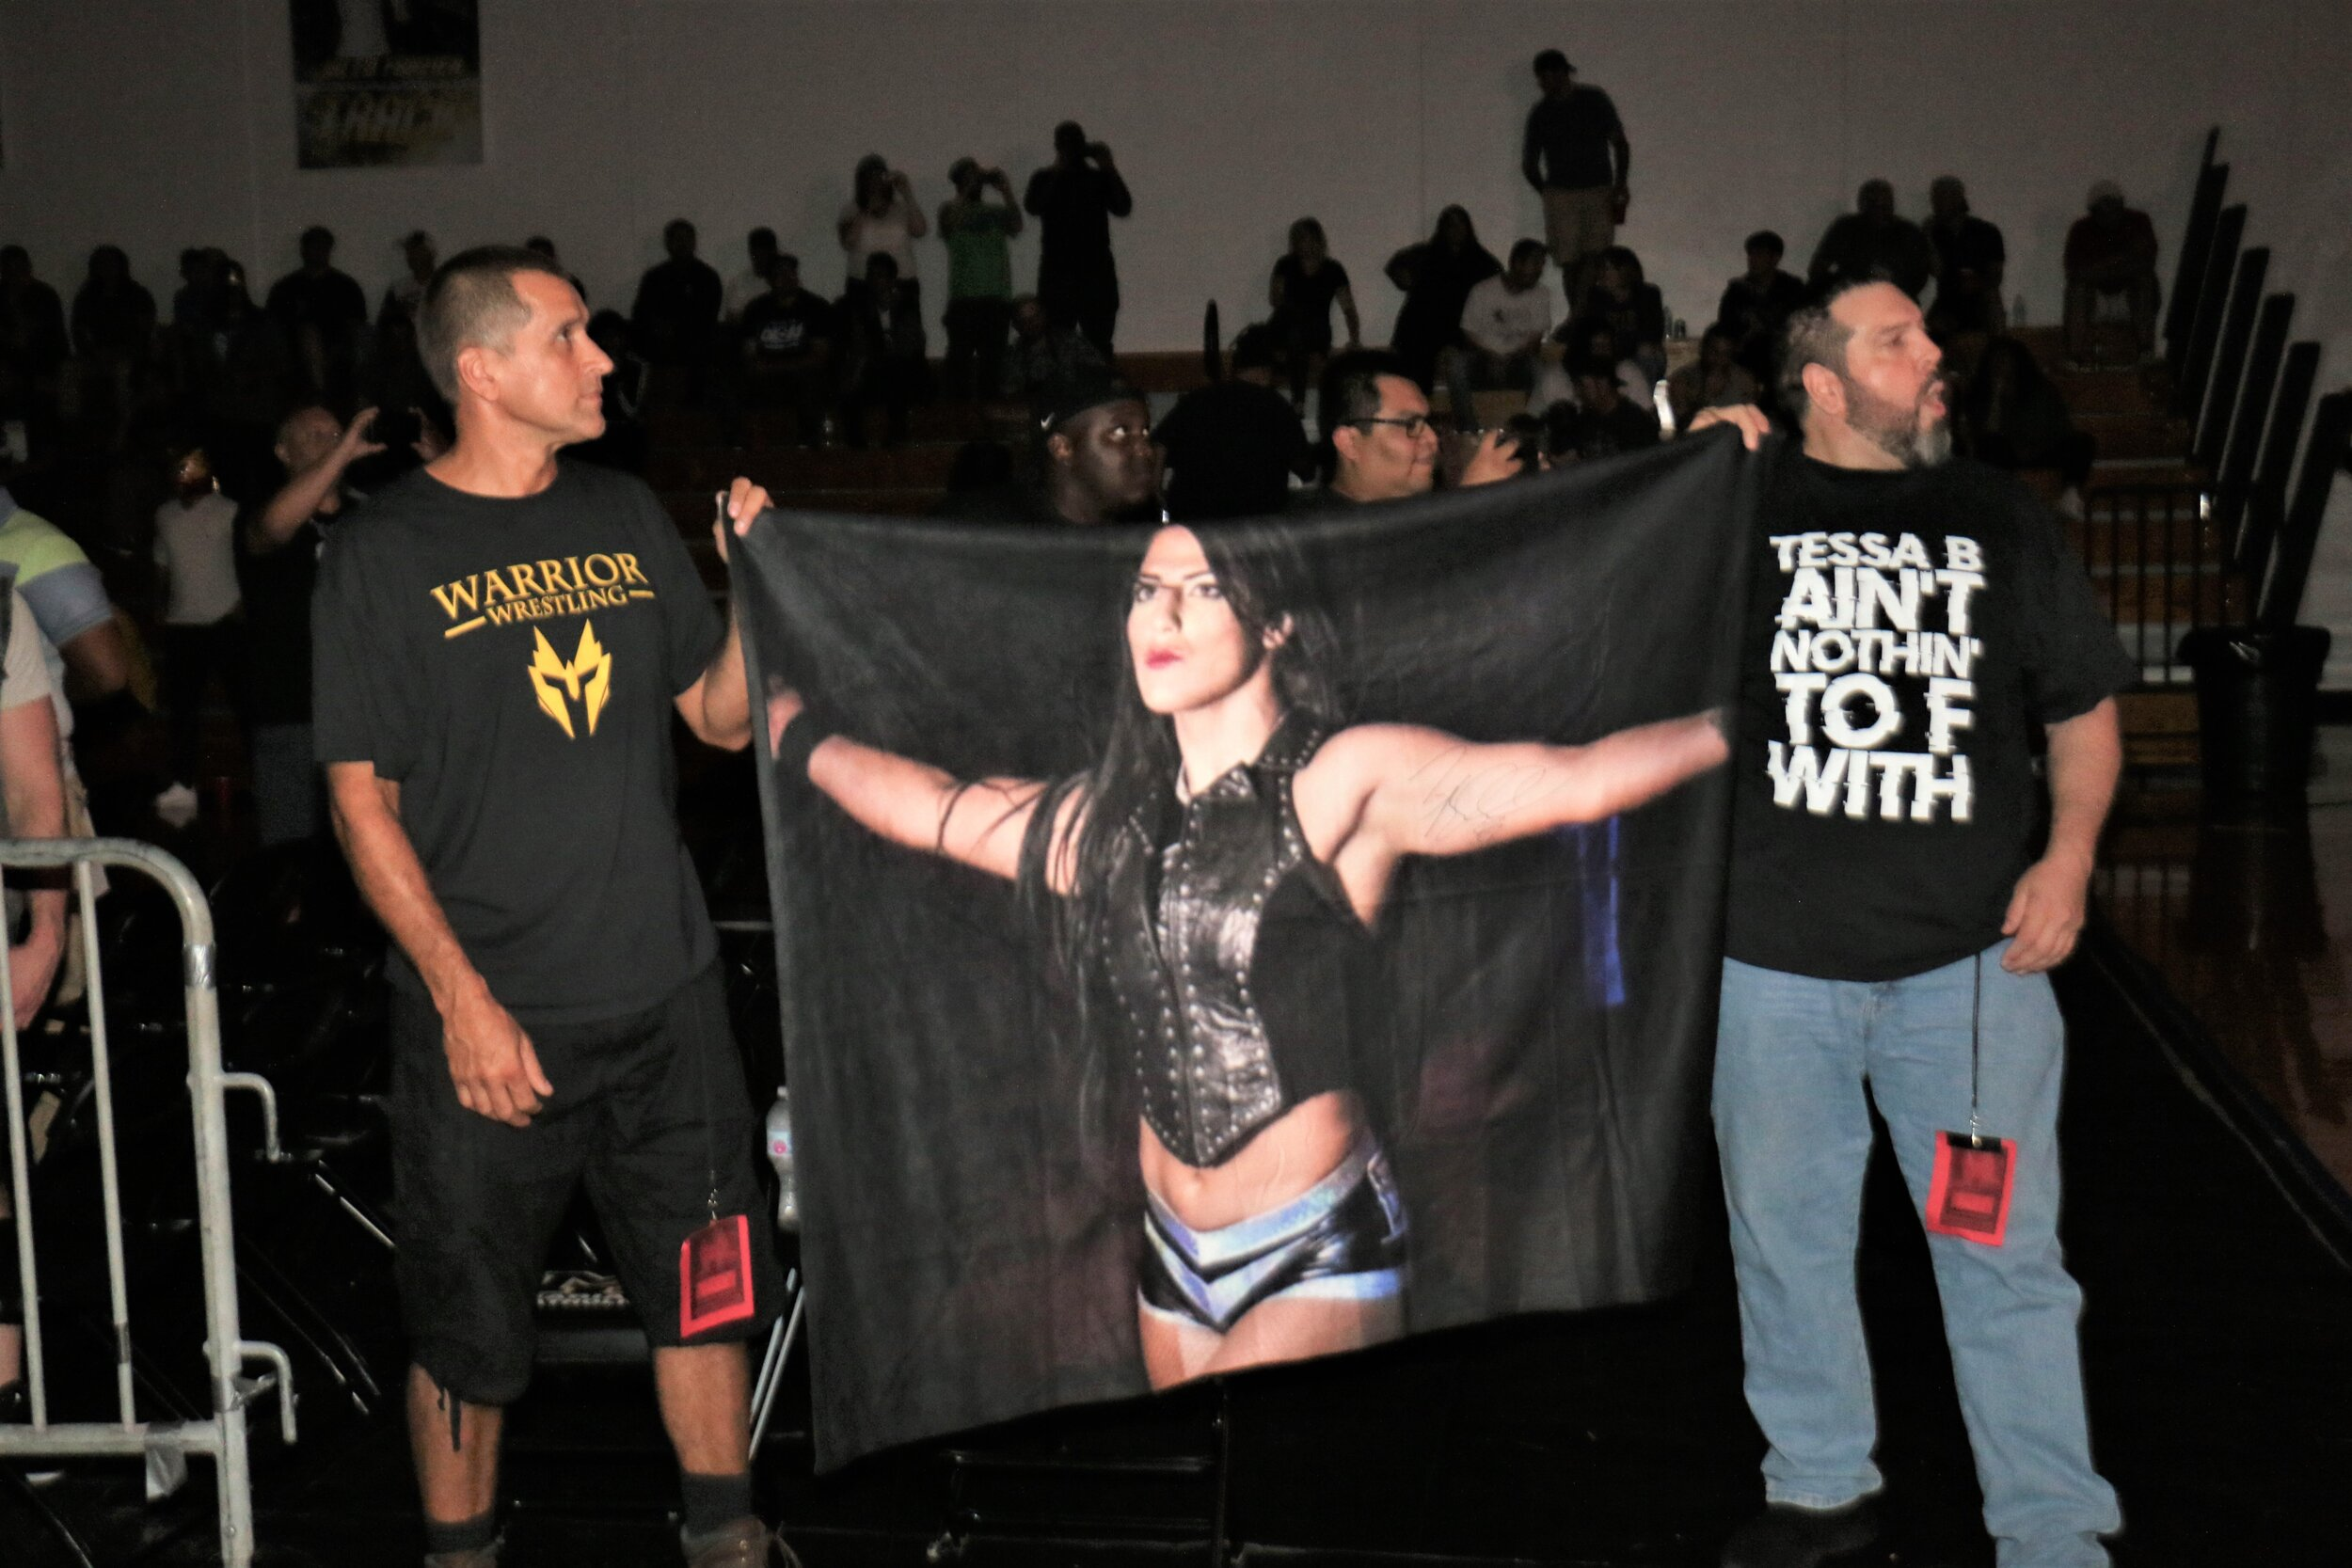 Fans hold up a banner for Tessa Blanchard.